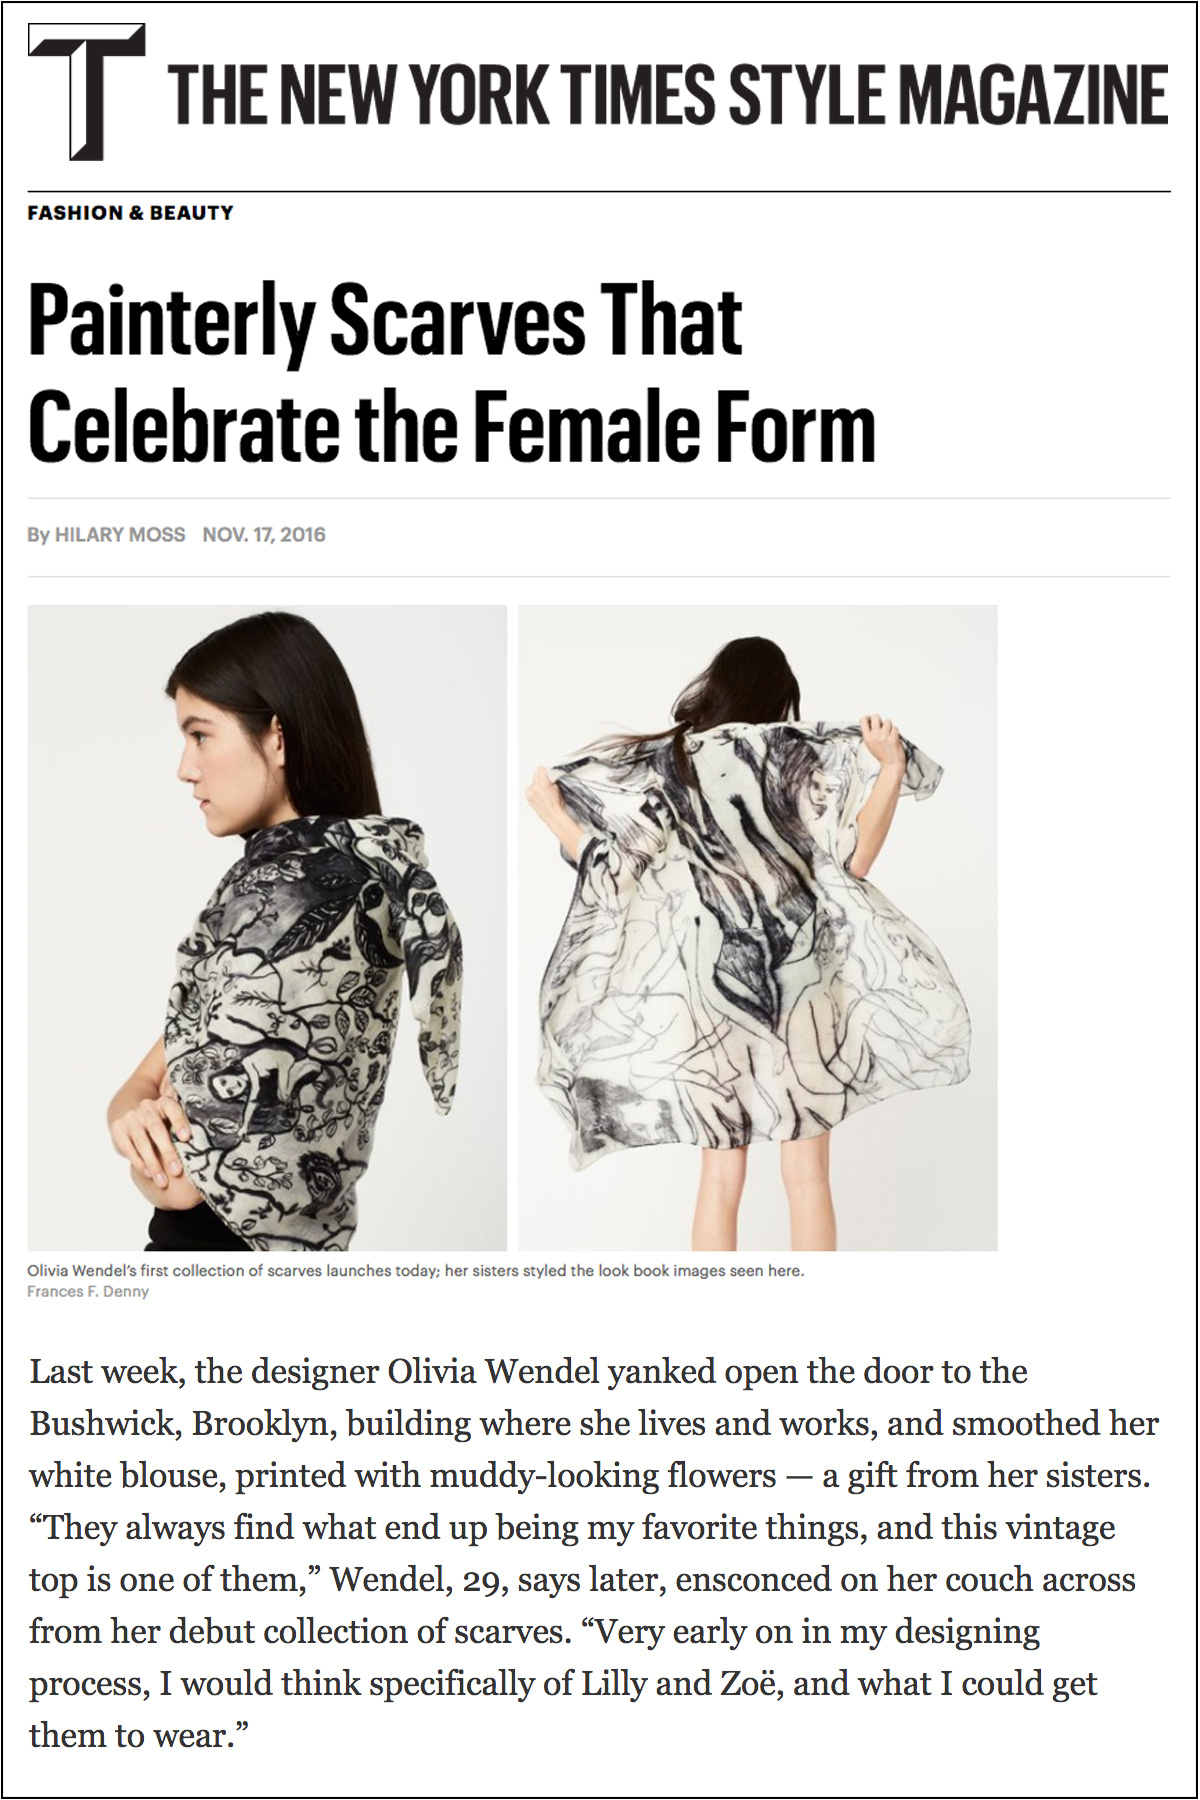 T Magazine: Painterly Scarves That Celebrate the Female Form   November 17, 2016